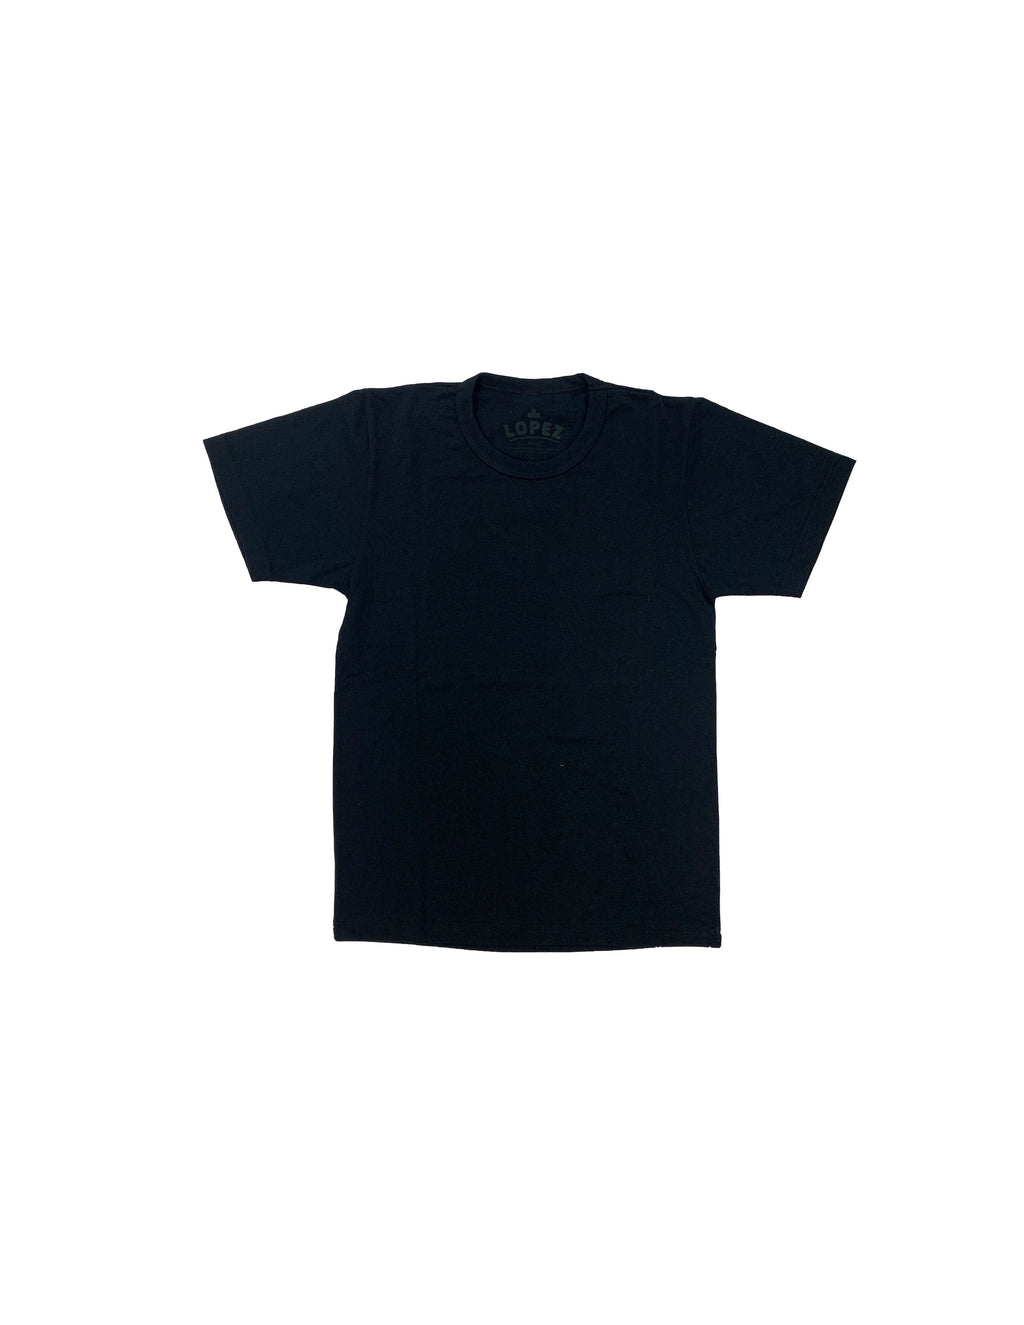 Recycled Blank Tee - Black